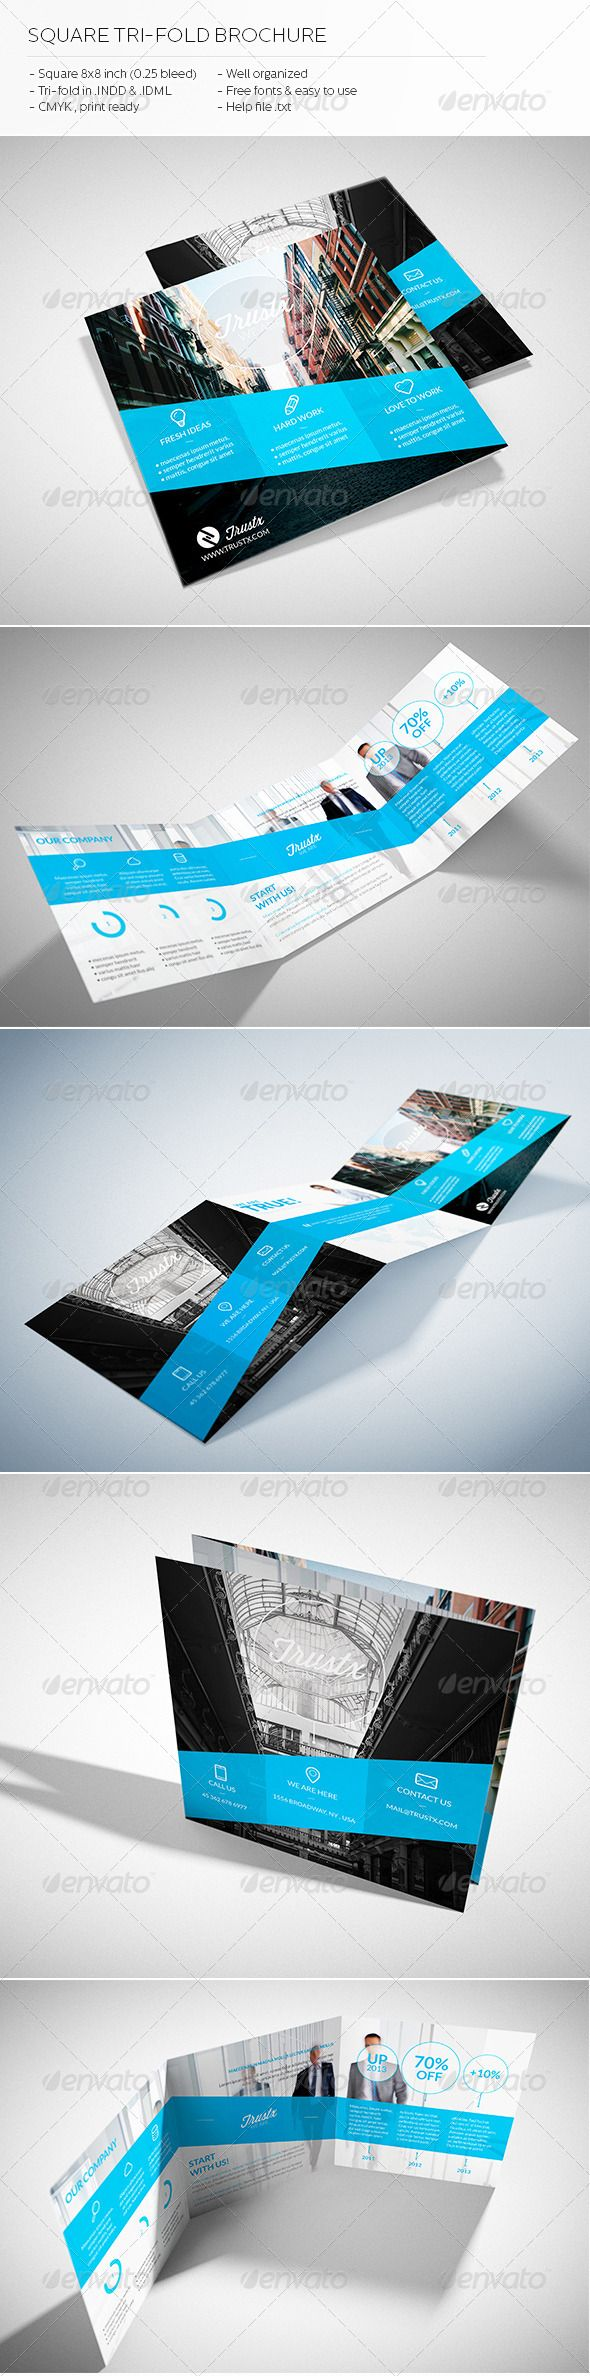 Trustx - Square Tri-fold Brochure  -  InDesign Template • Only available here! →…